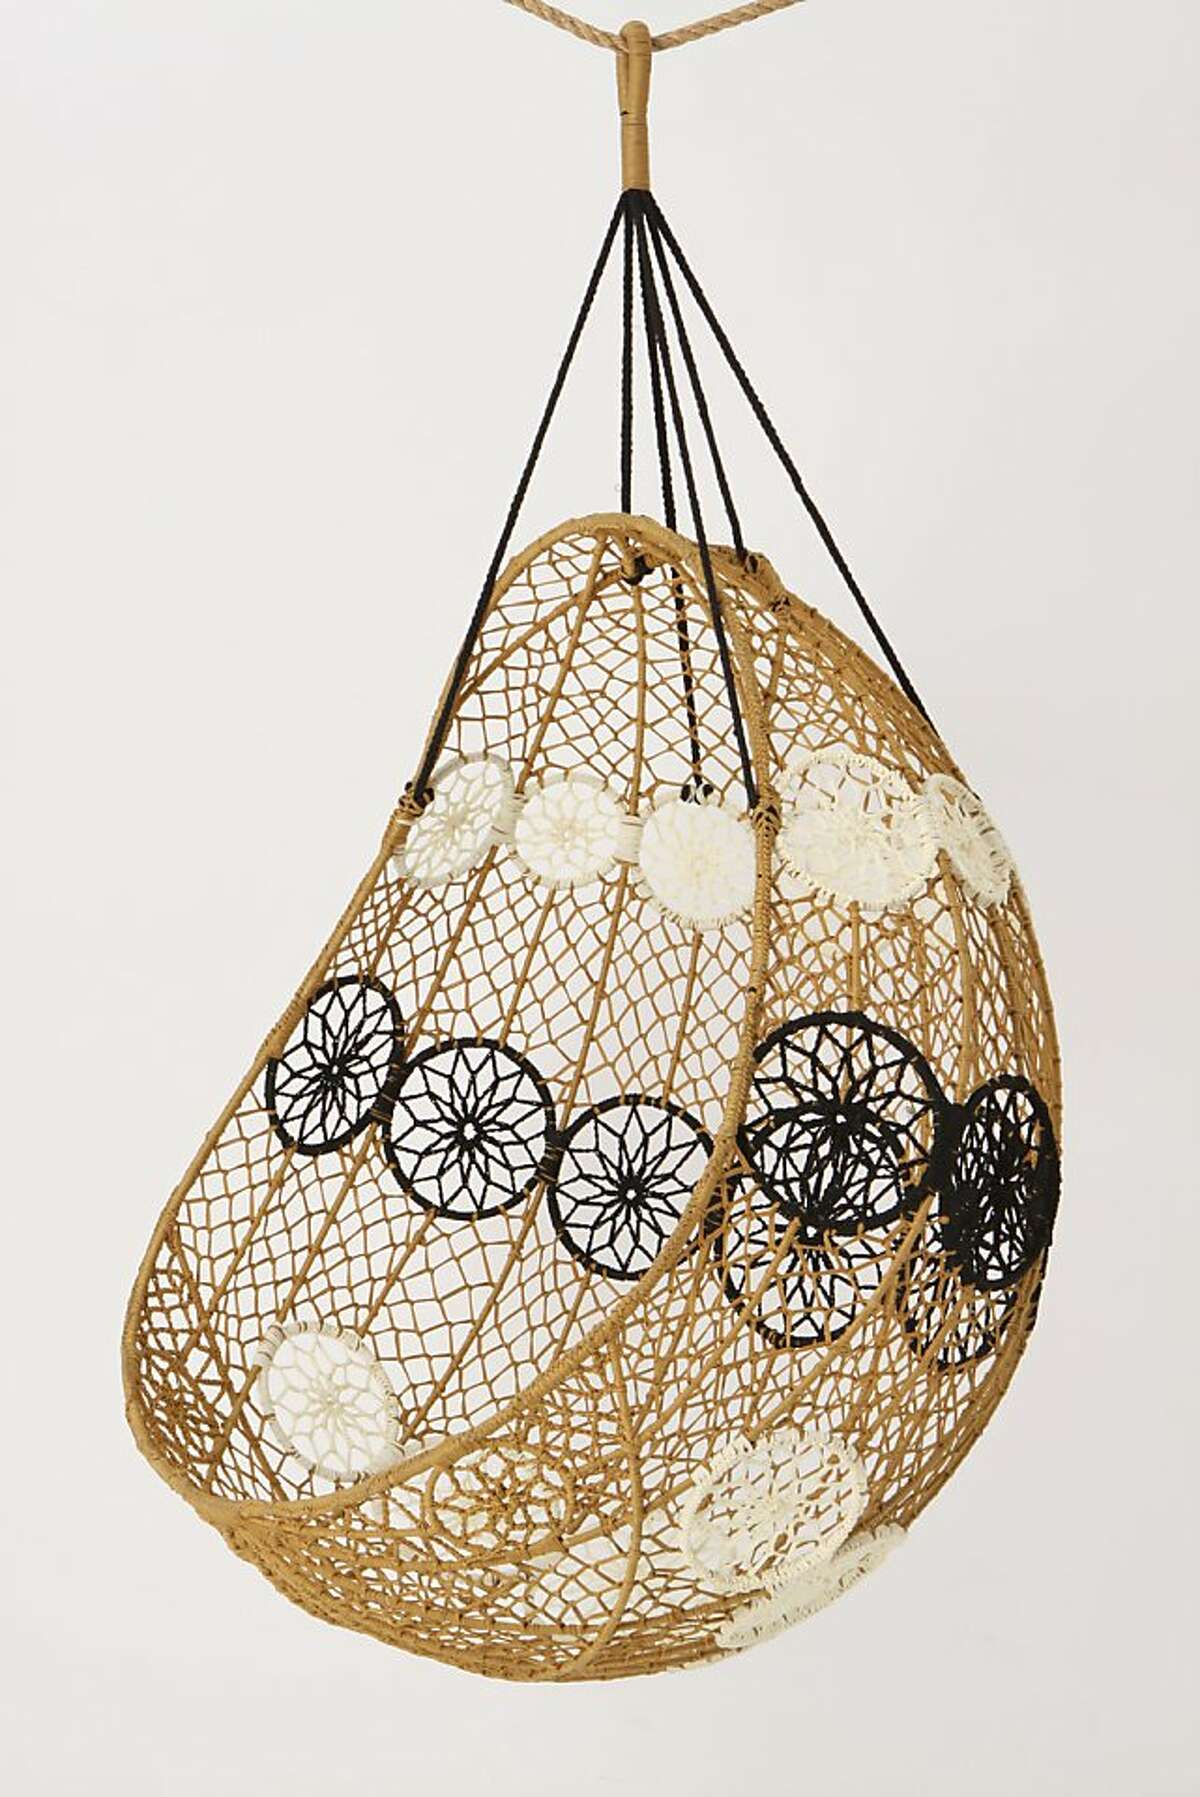 More: $498 Knotted Melati Hanging Chair from Anthropologie (Anthropologie)